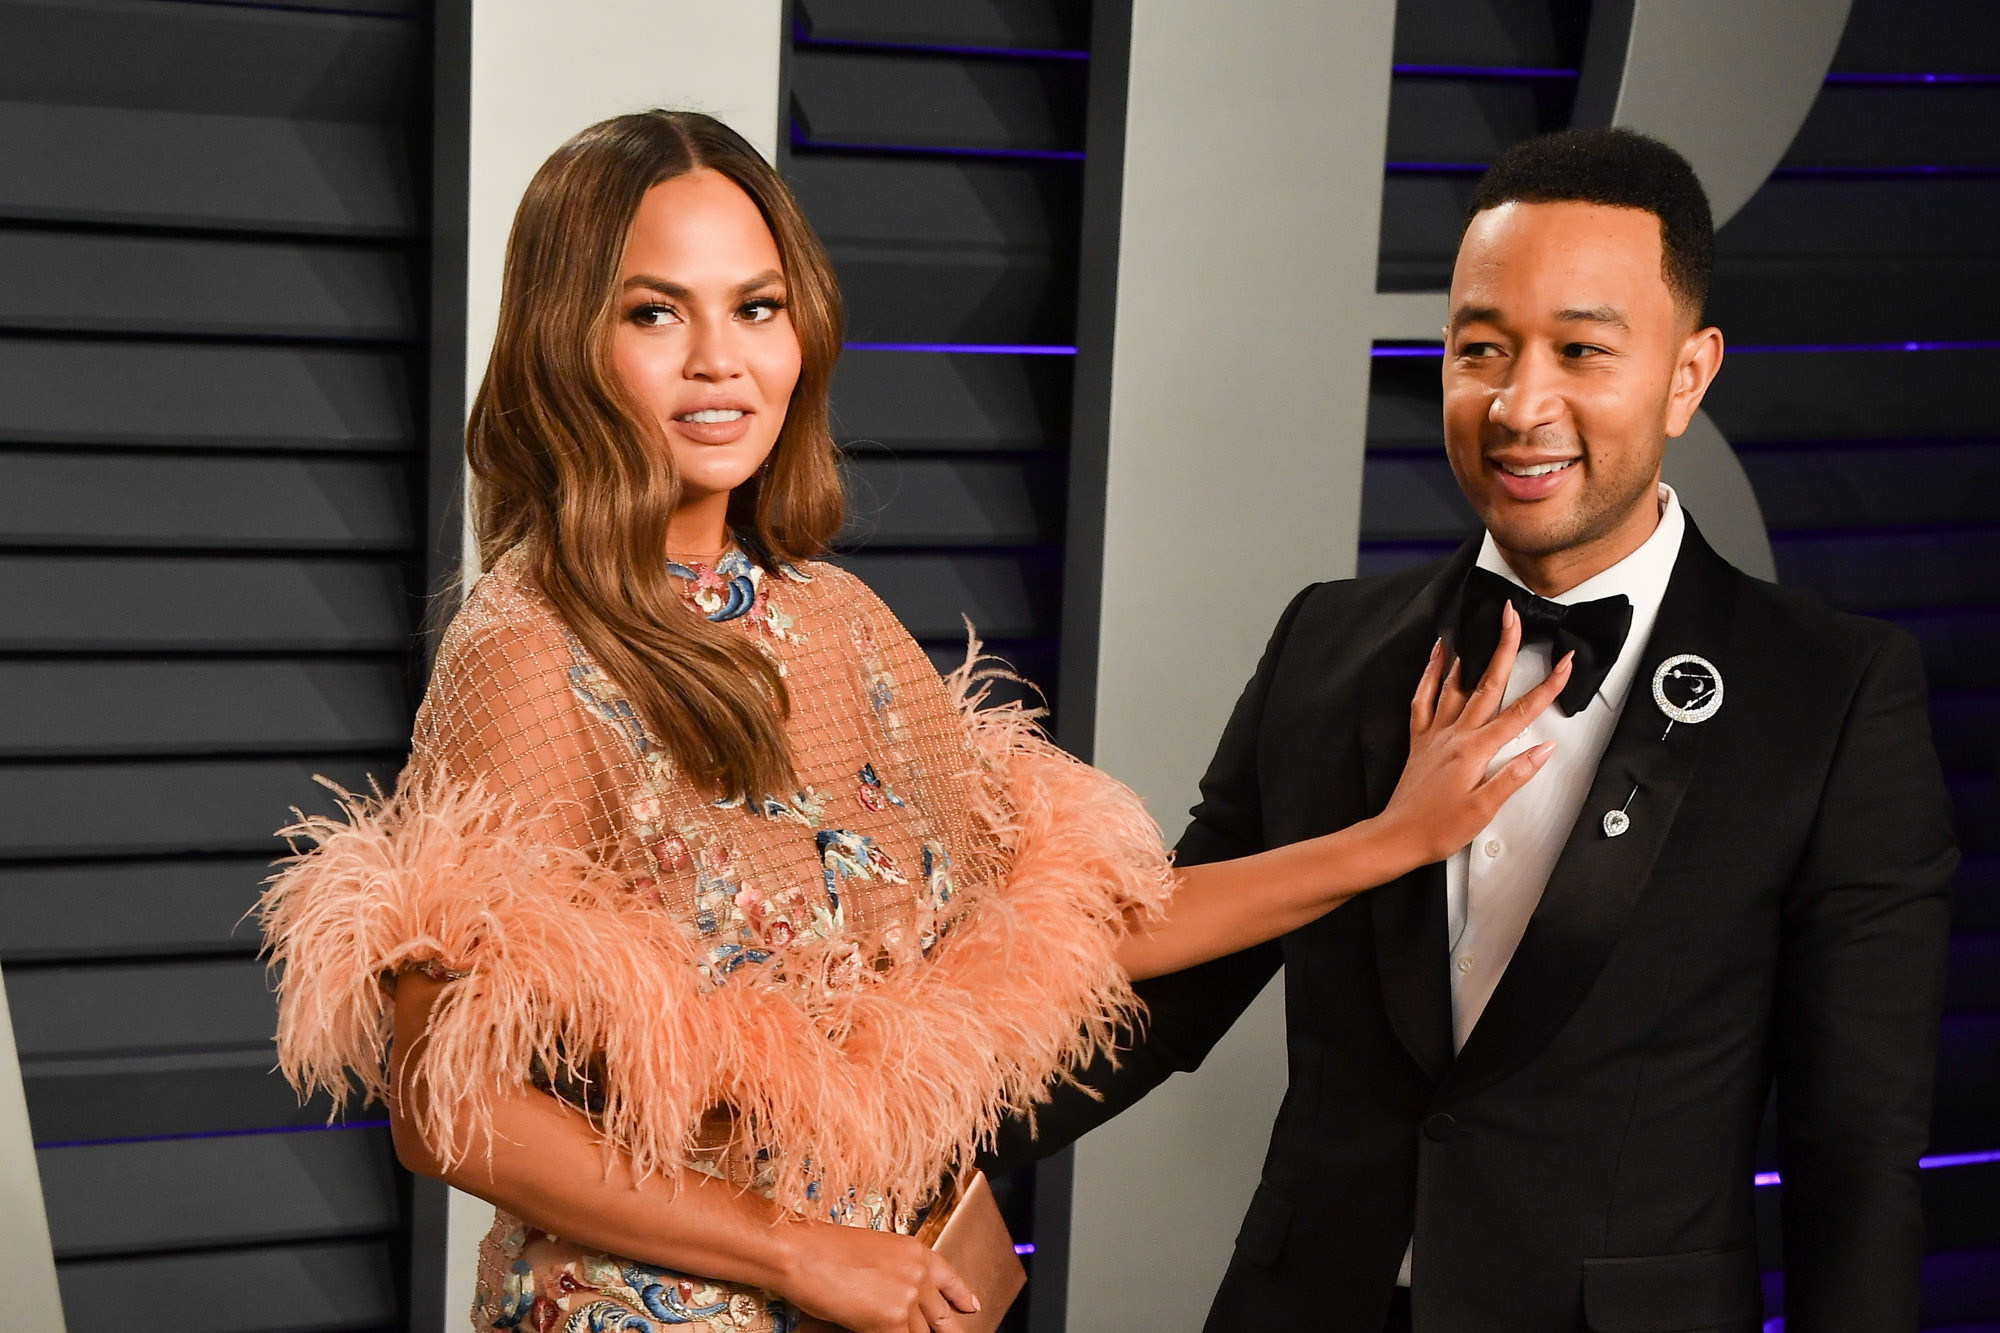 The romantic gesture John Legend made to be with his wife